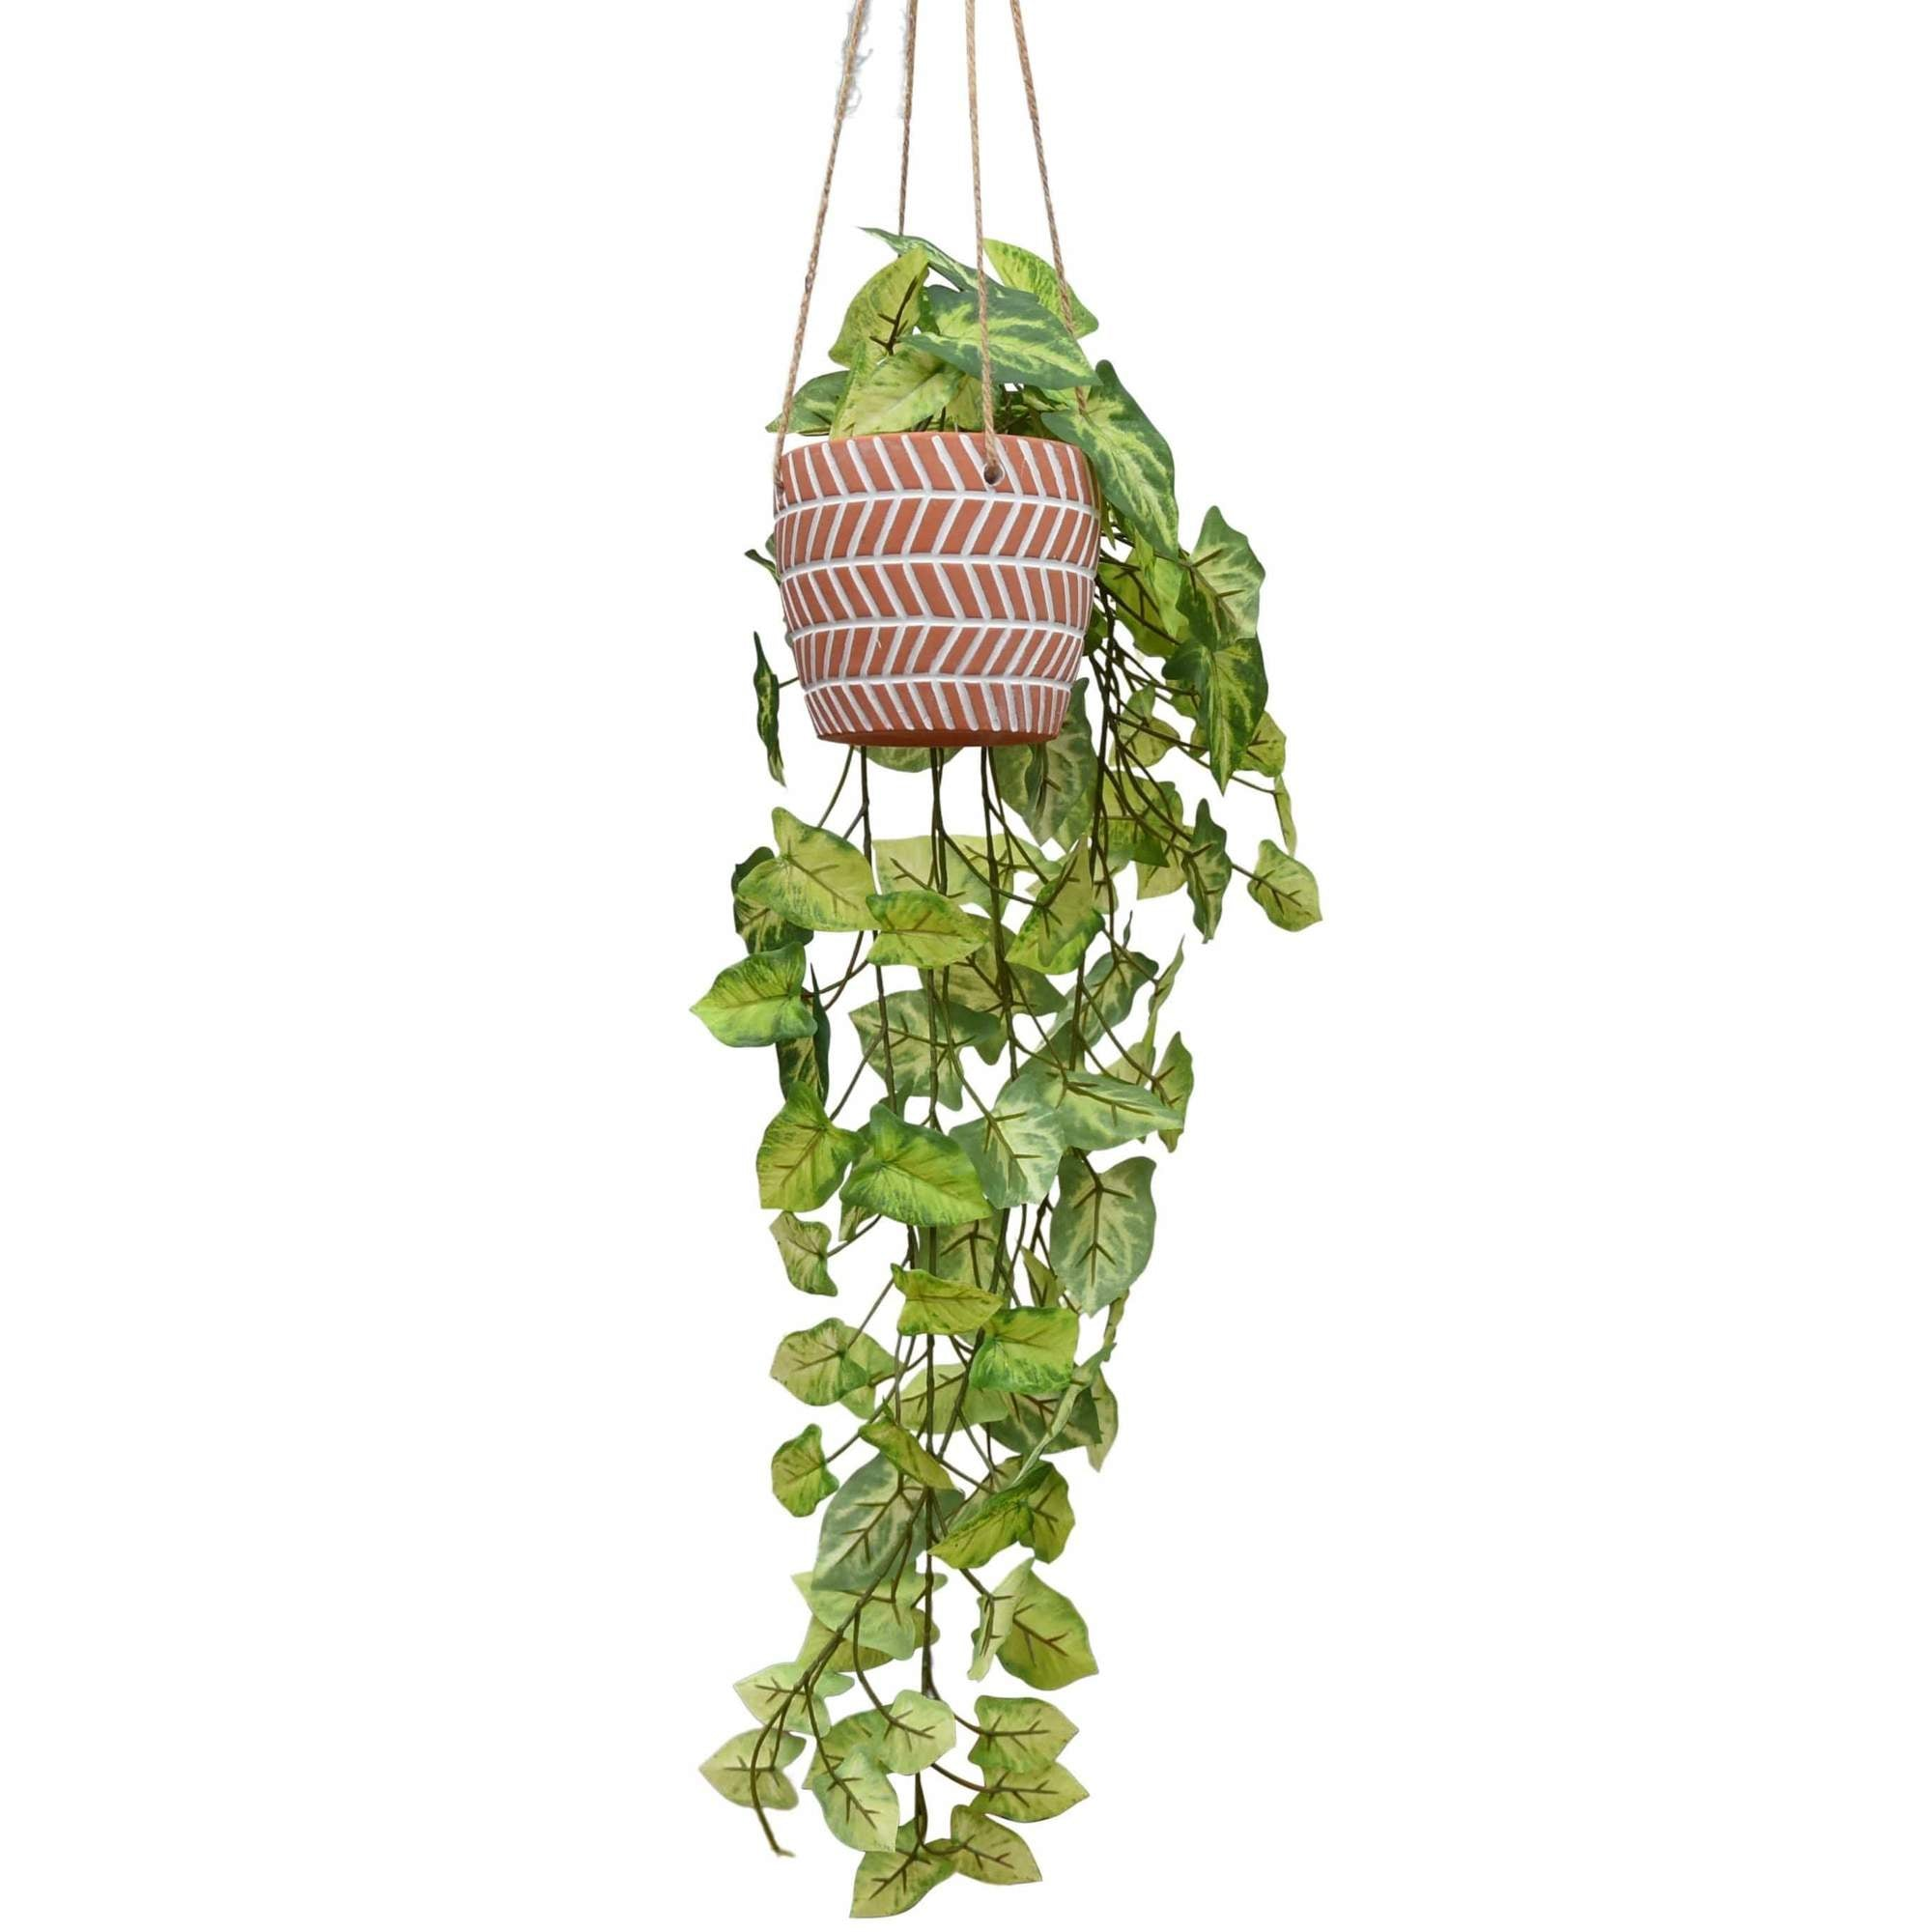 Trailing Foliage in Hanging Terracotta Ceramic Pot